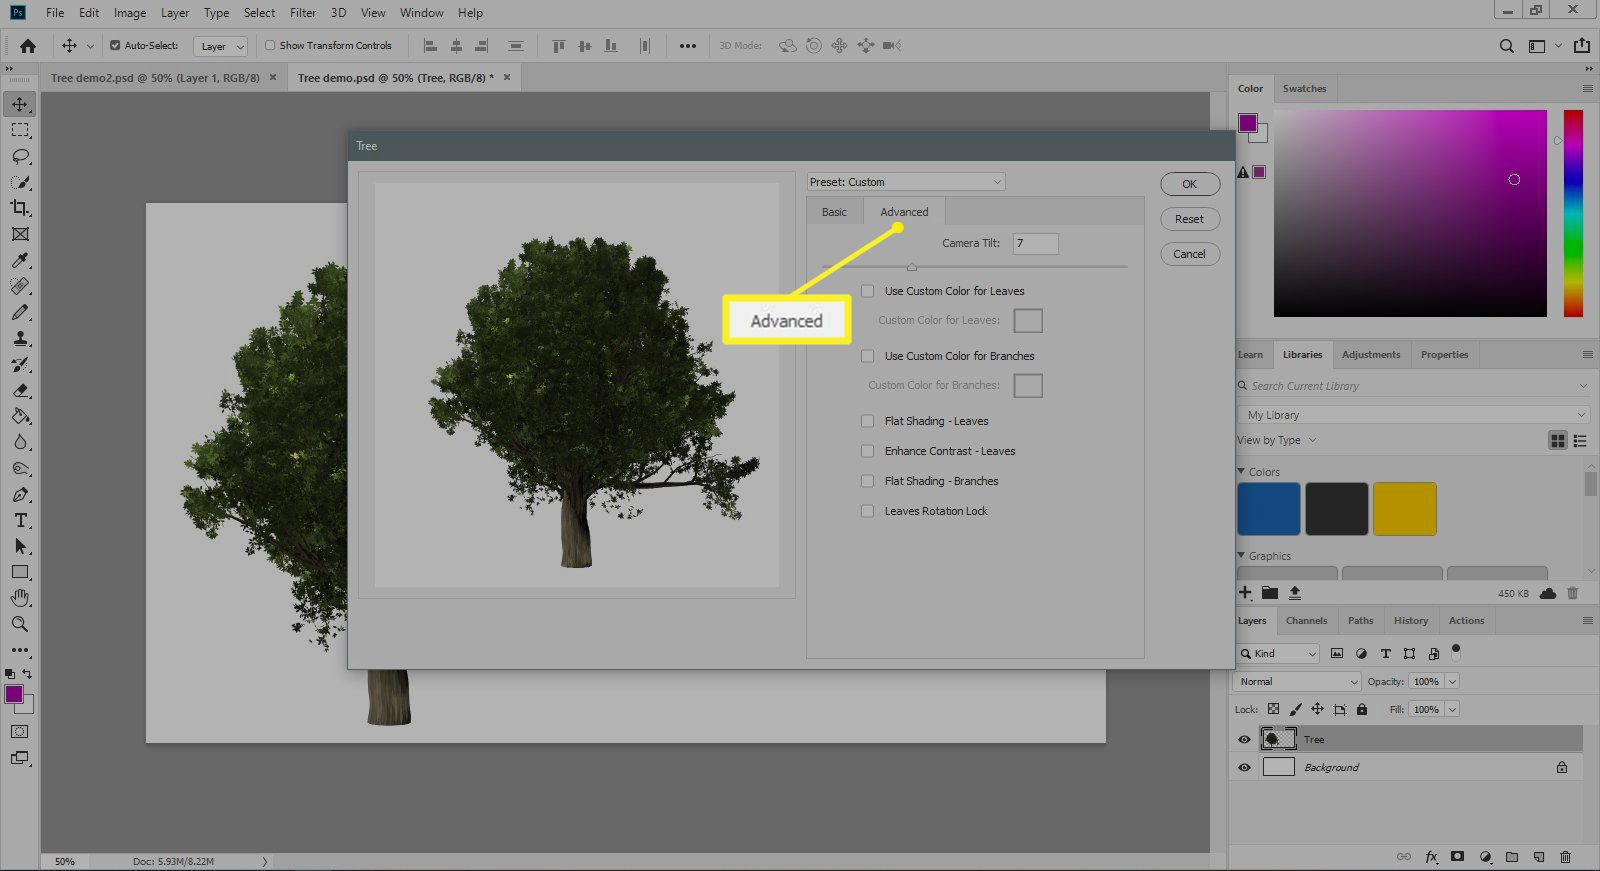 The Advanced tab of the Tree filter dialogue